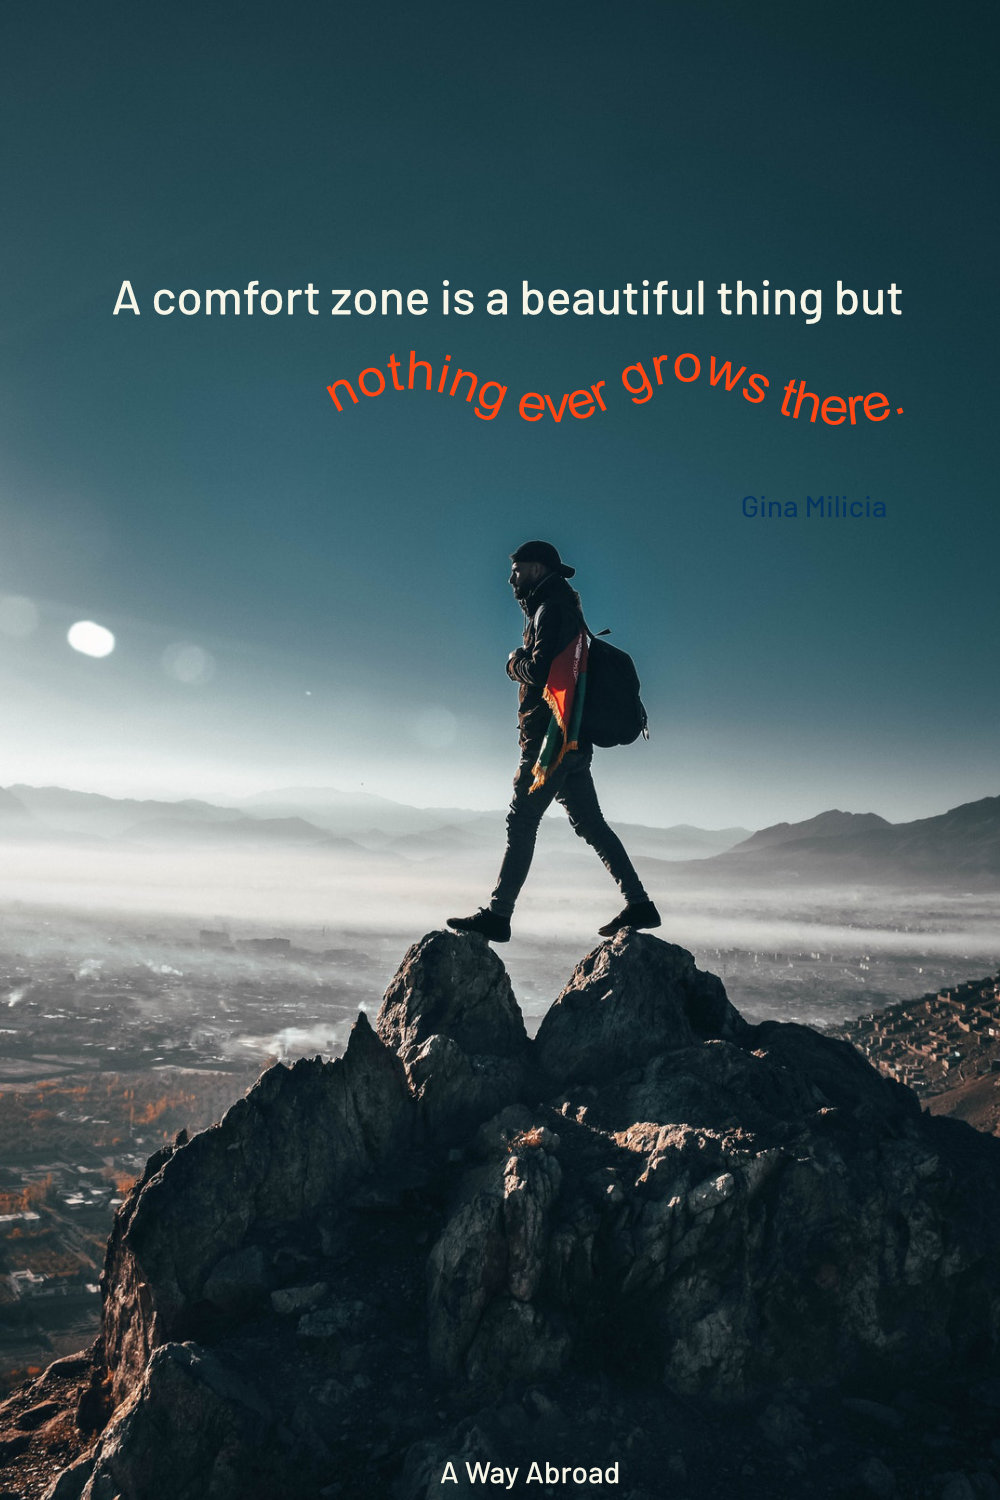 man walking on top of a mountain peak on a bright blue sky with a quote to get out of your comfort zone